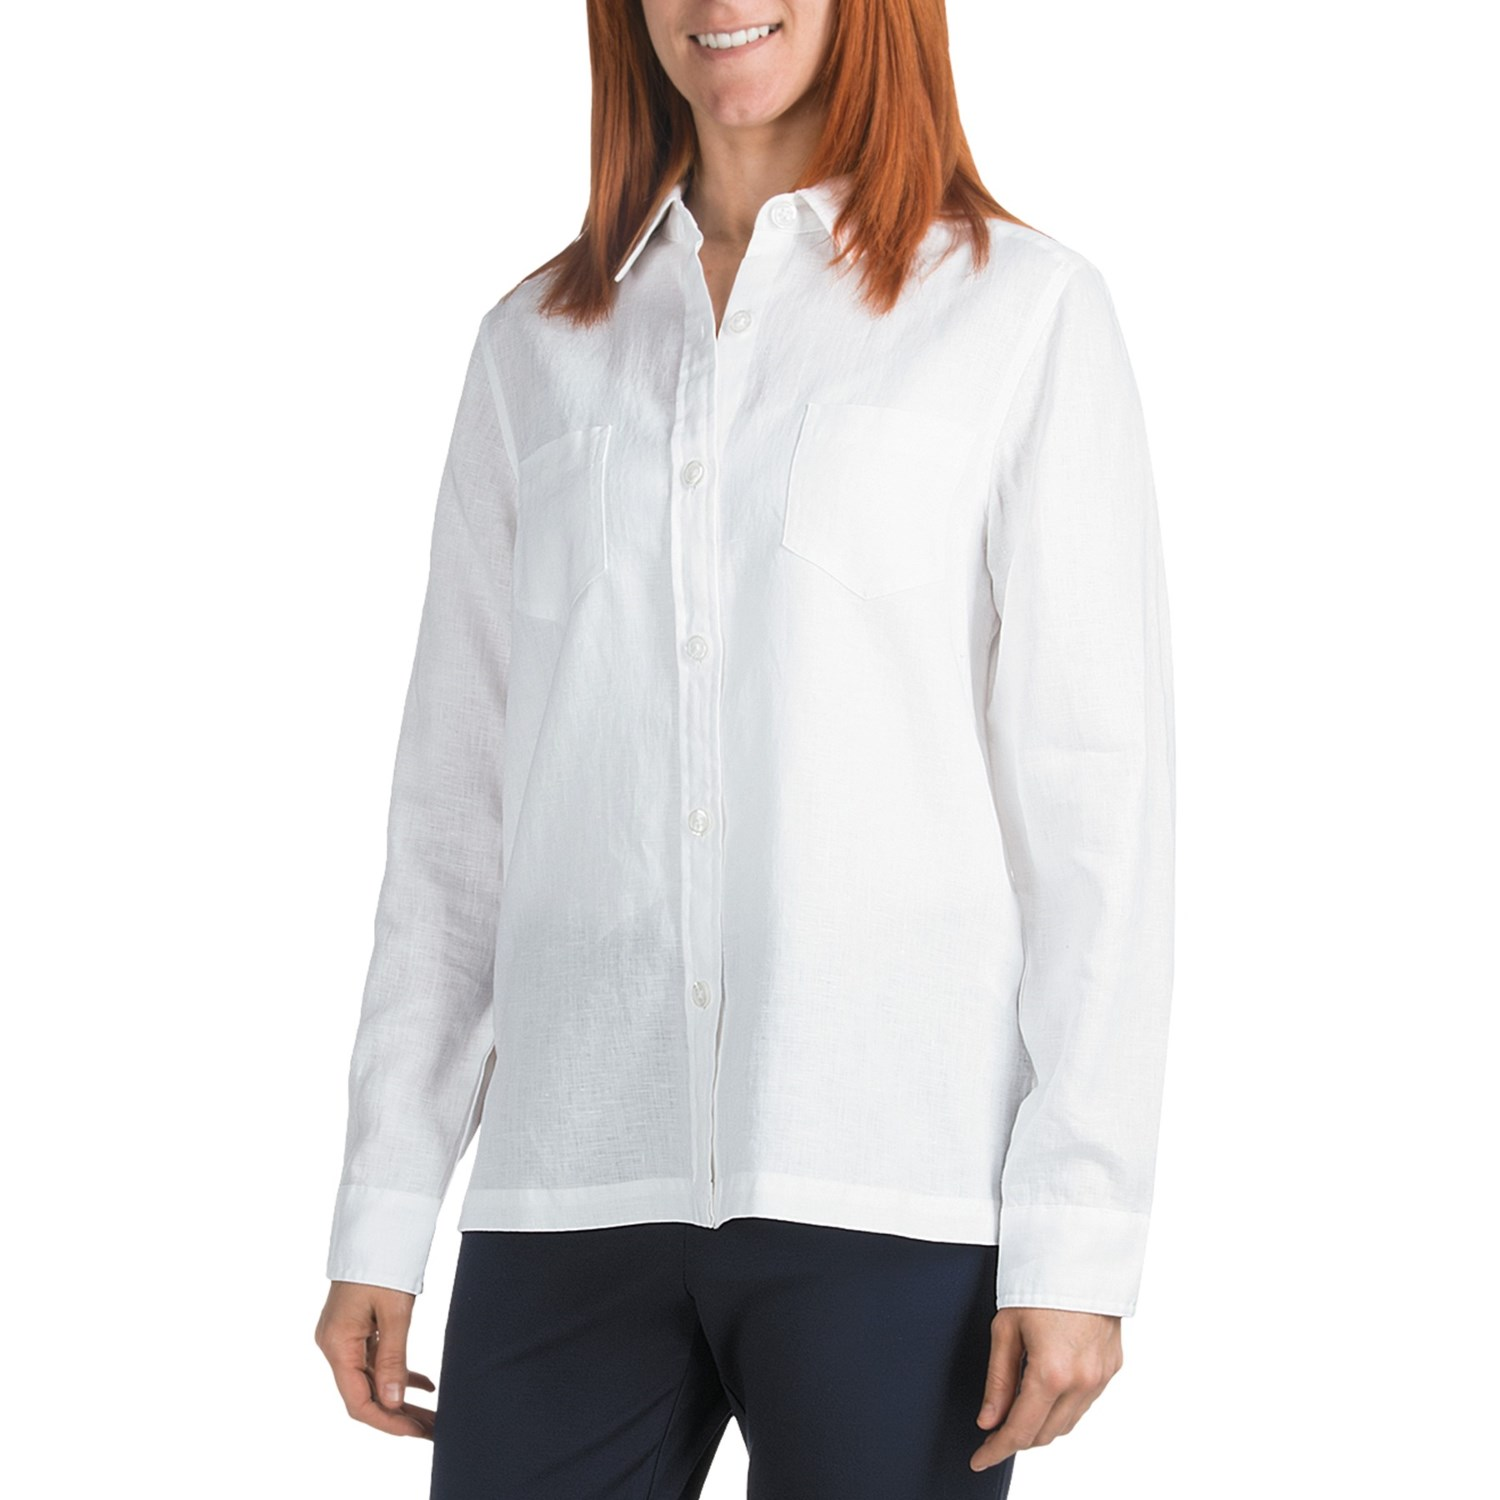 Free shipping BOTH ways on mens long sleeve linen shirts, from our vast selection of styles. Fast delivery, and 24/7/ real-person service with a smile. Click or call